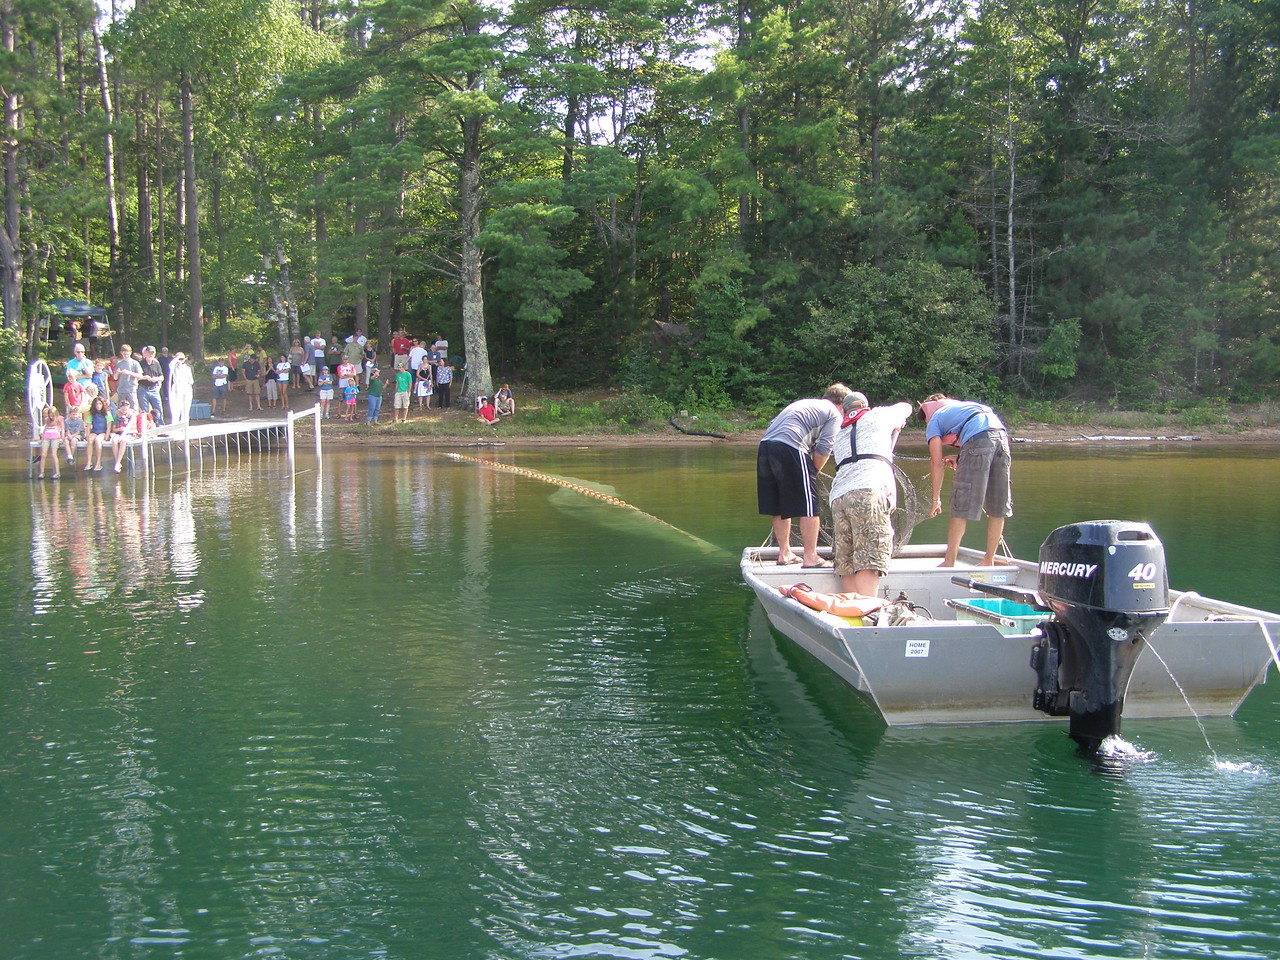 """The Fyke net pull, when researchers bring live fish up from the bottom of the lake, is always a popular """"spectator sport"""" at our open houses."""